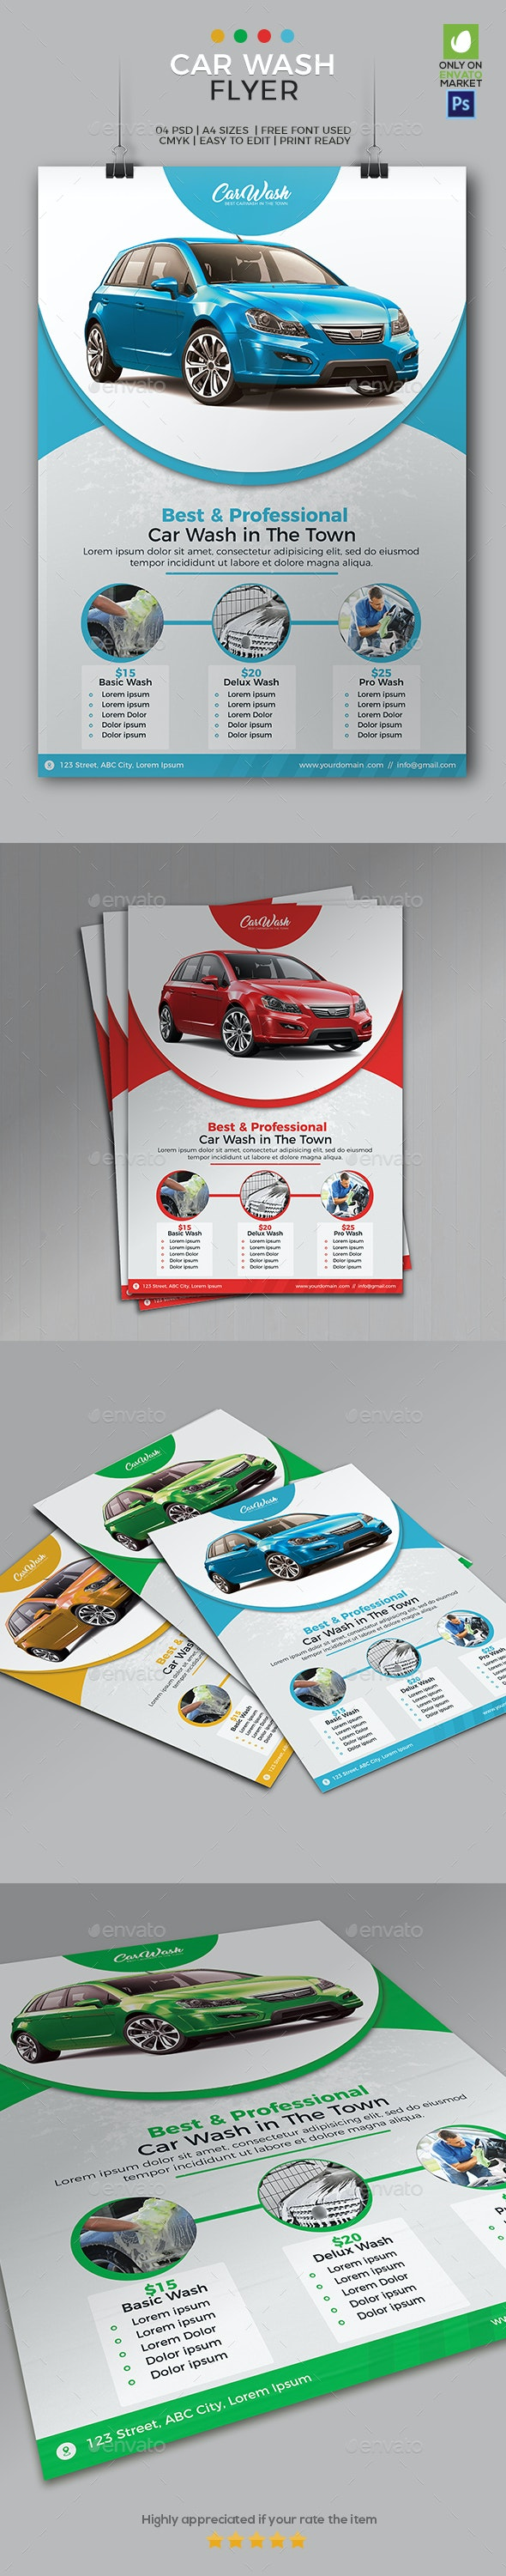 Car Wash Flyer Template 01 - Commerce Flyers